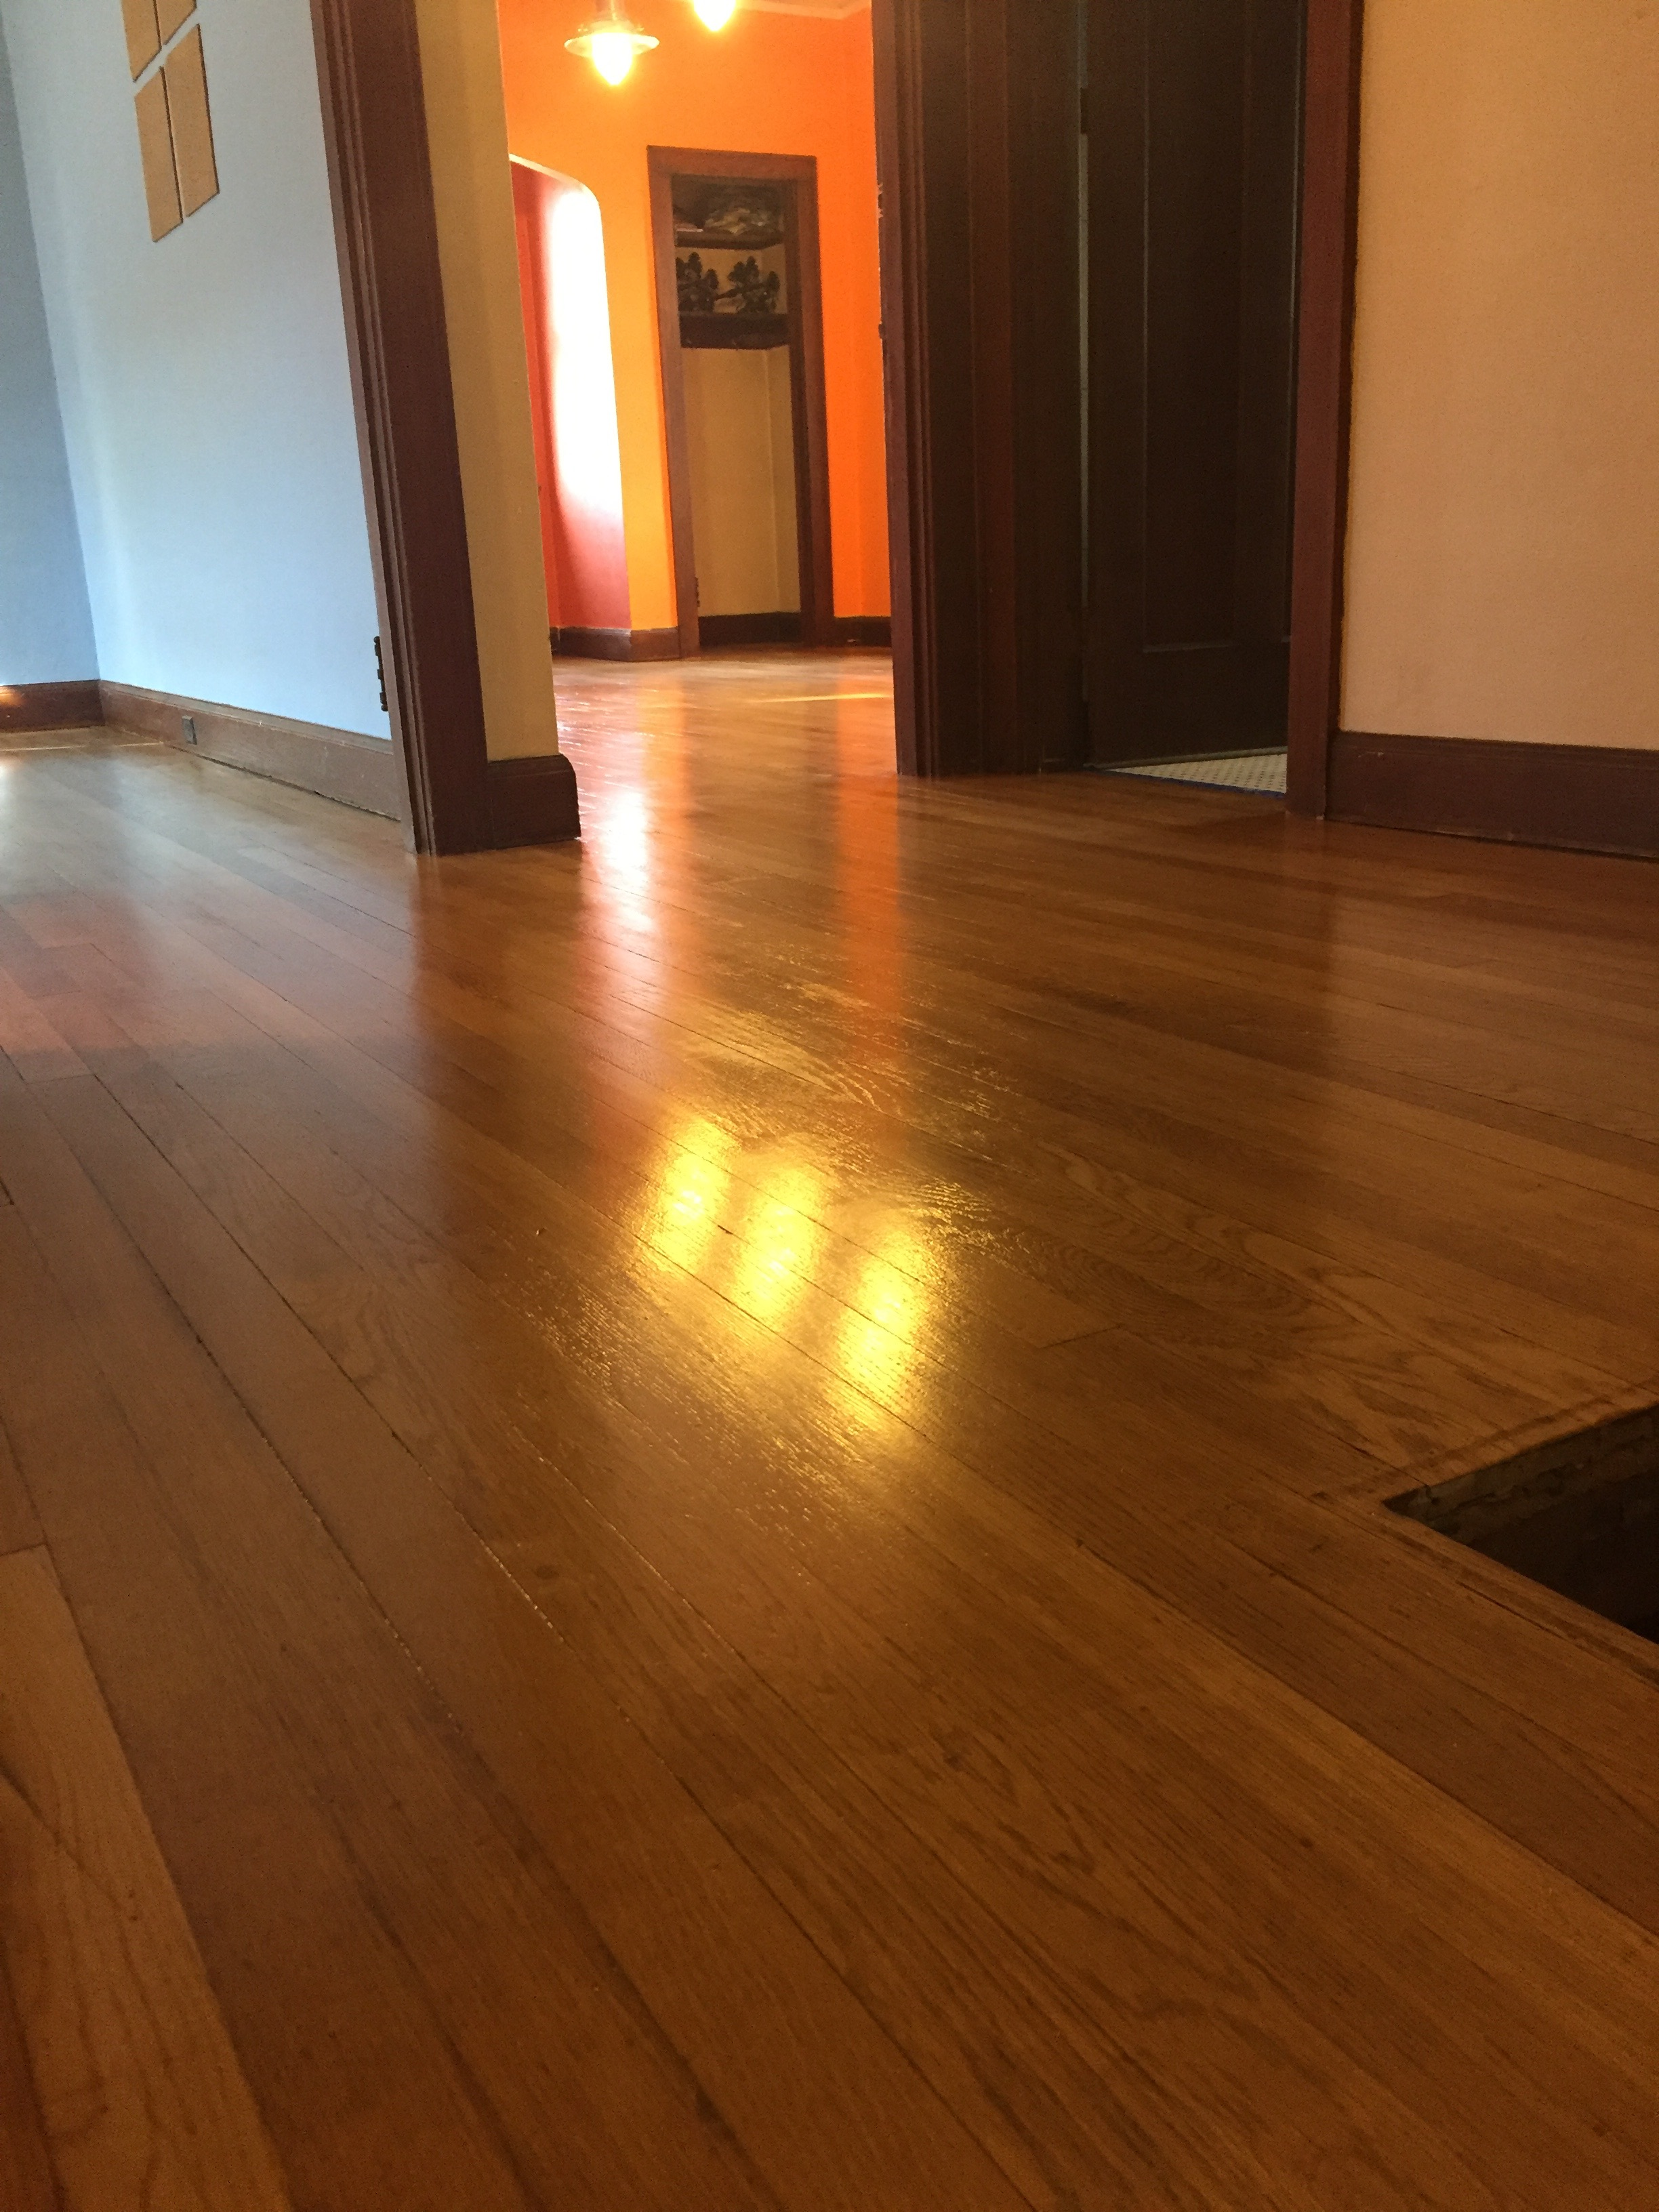 The refinished floor. So. Pretty.